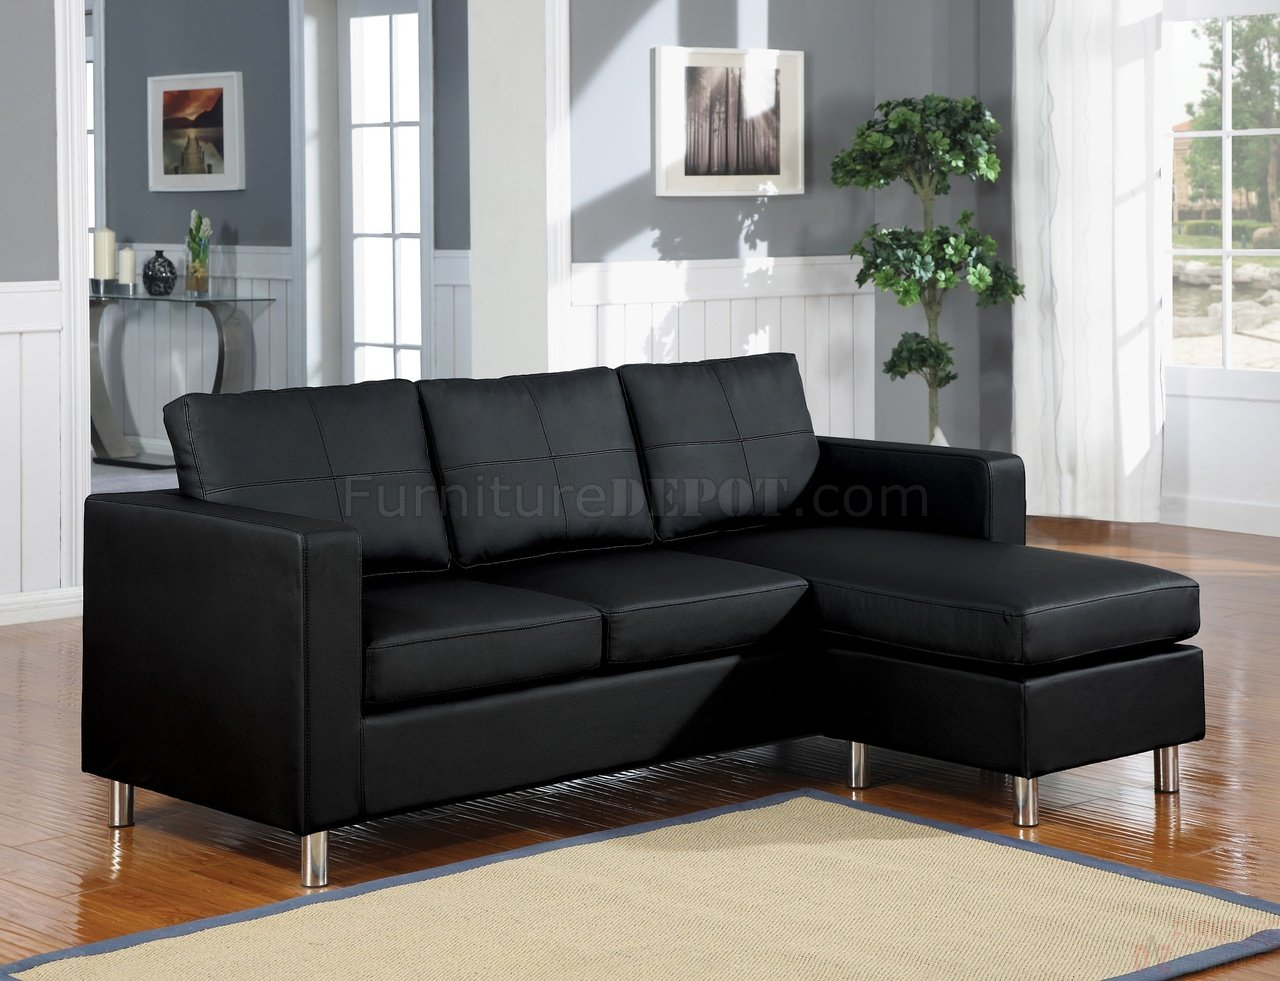 Contemporary Bedroom Set London Black By Acme Furniture: 15065 Kemen Sectional Sofa In Black Vinyl By Acme